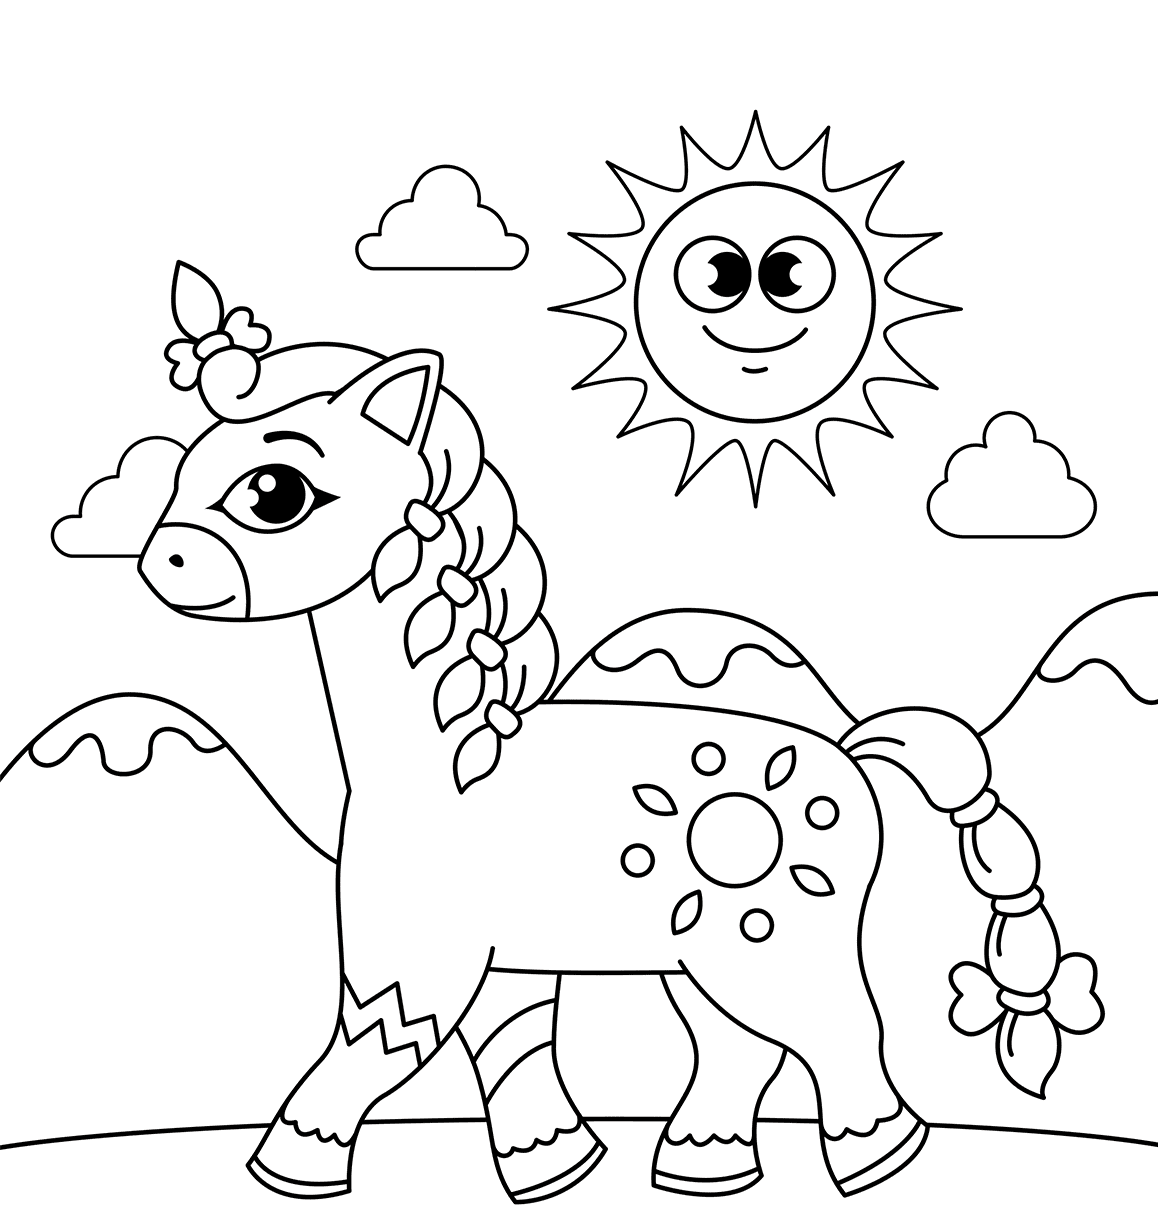 Free Printable Horse Coloring Pages With Images